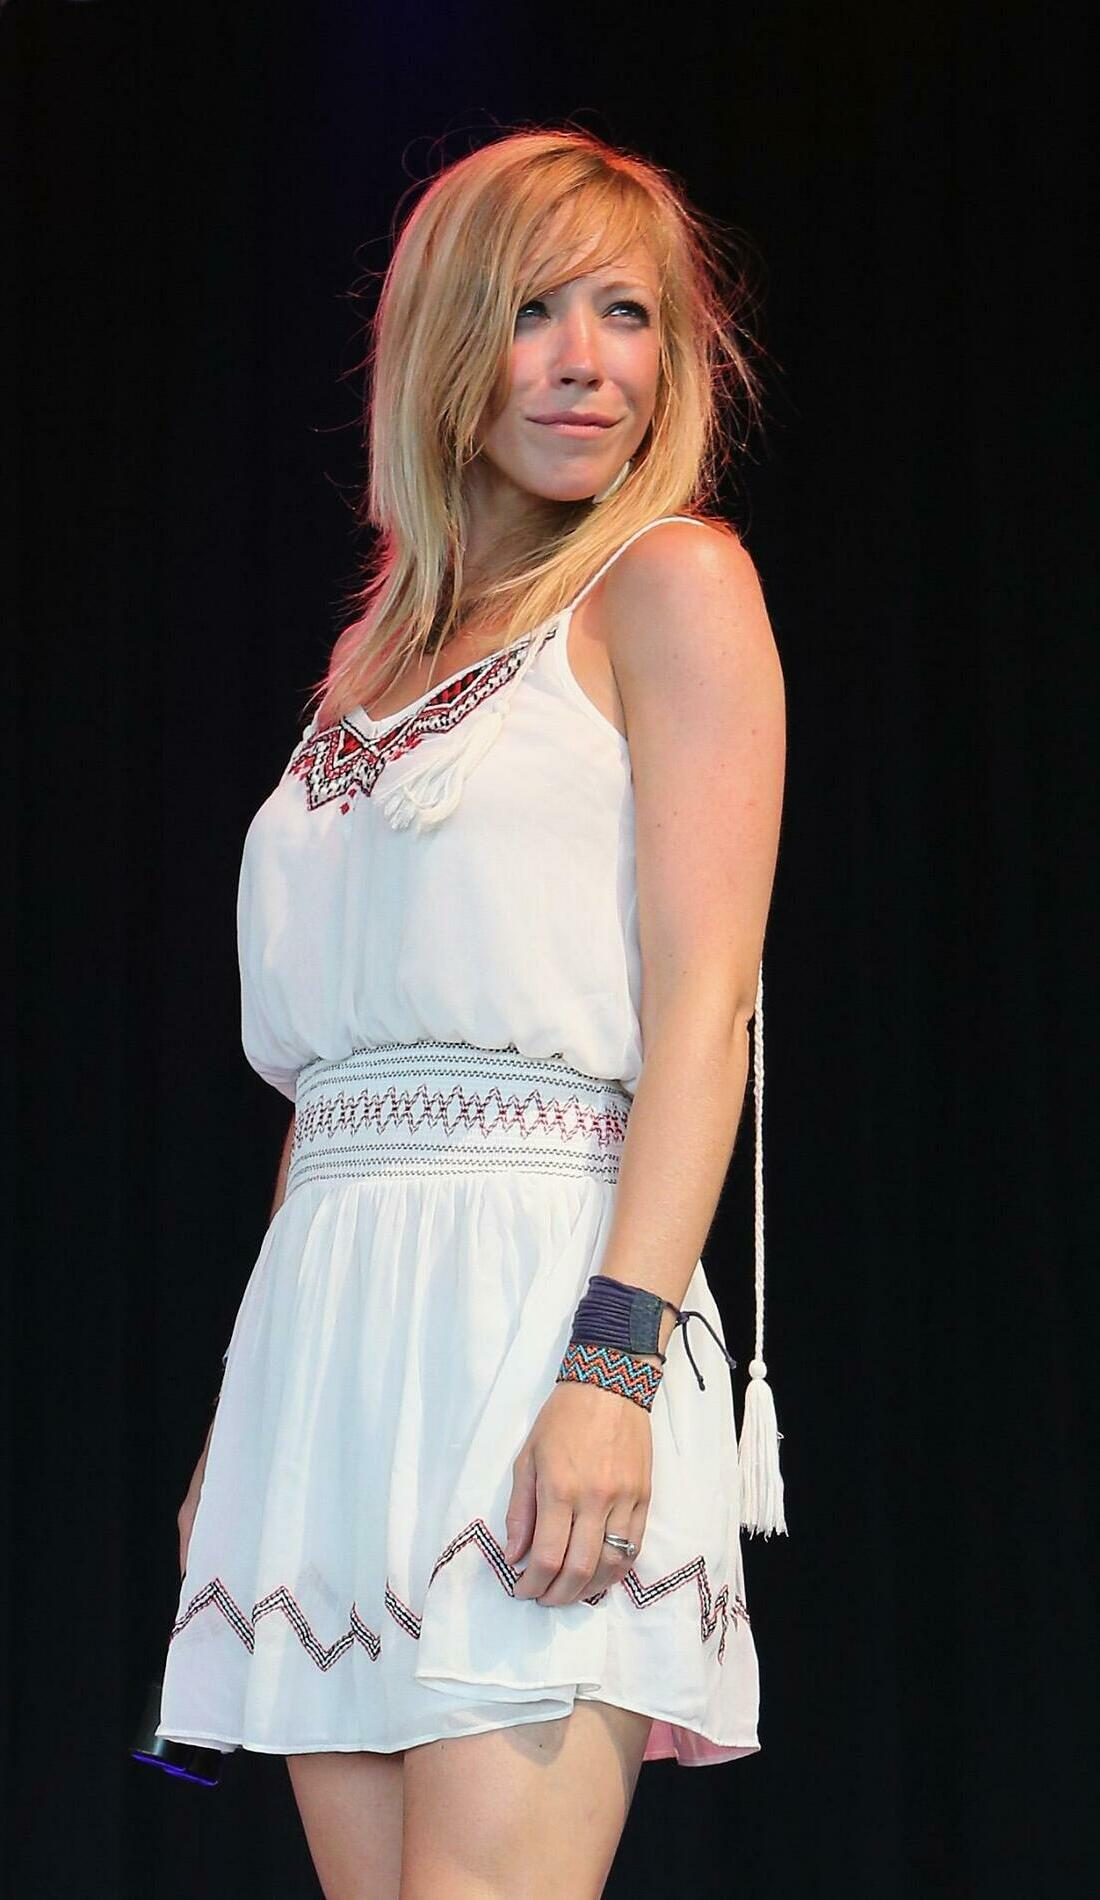 A Ellie Holcomb live event